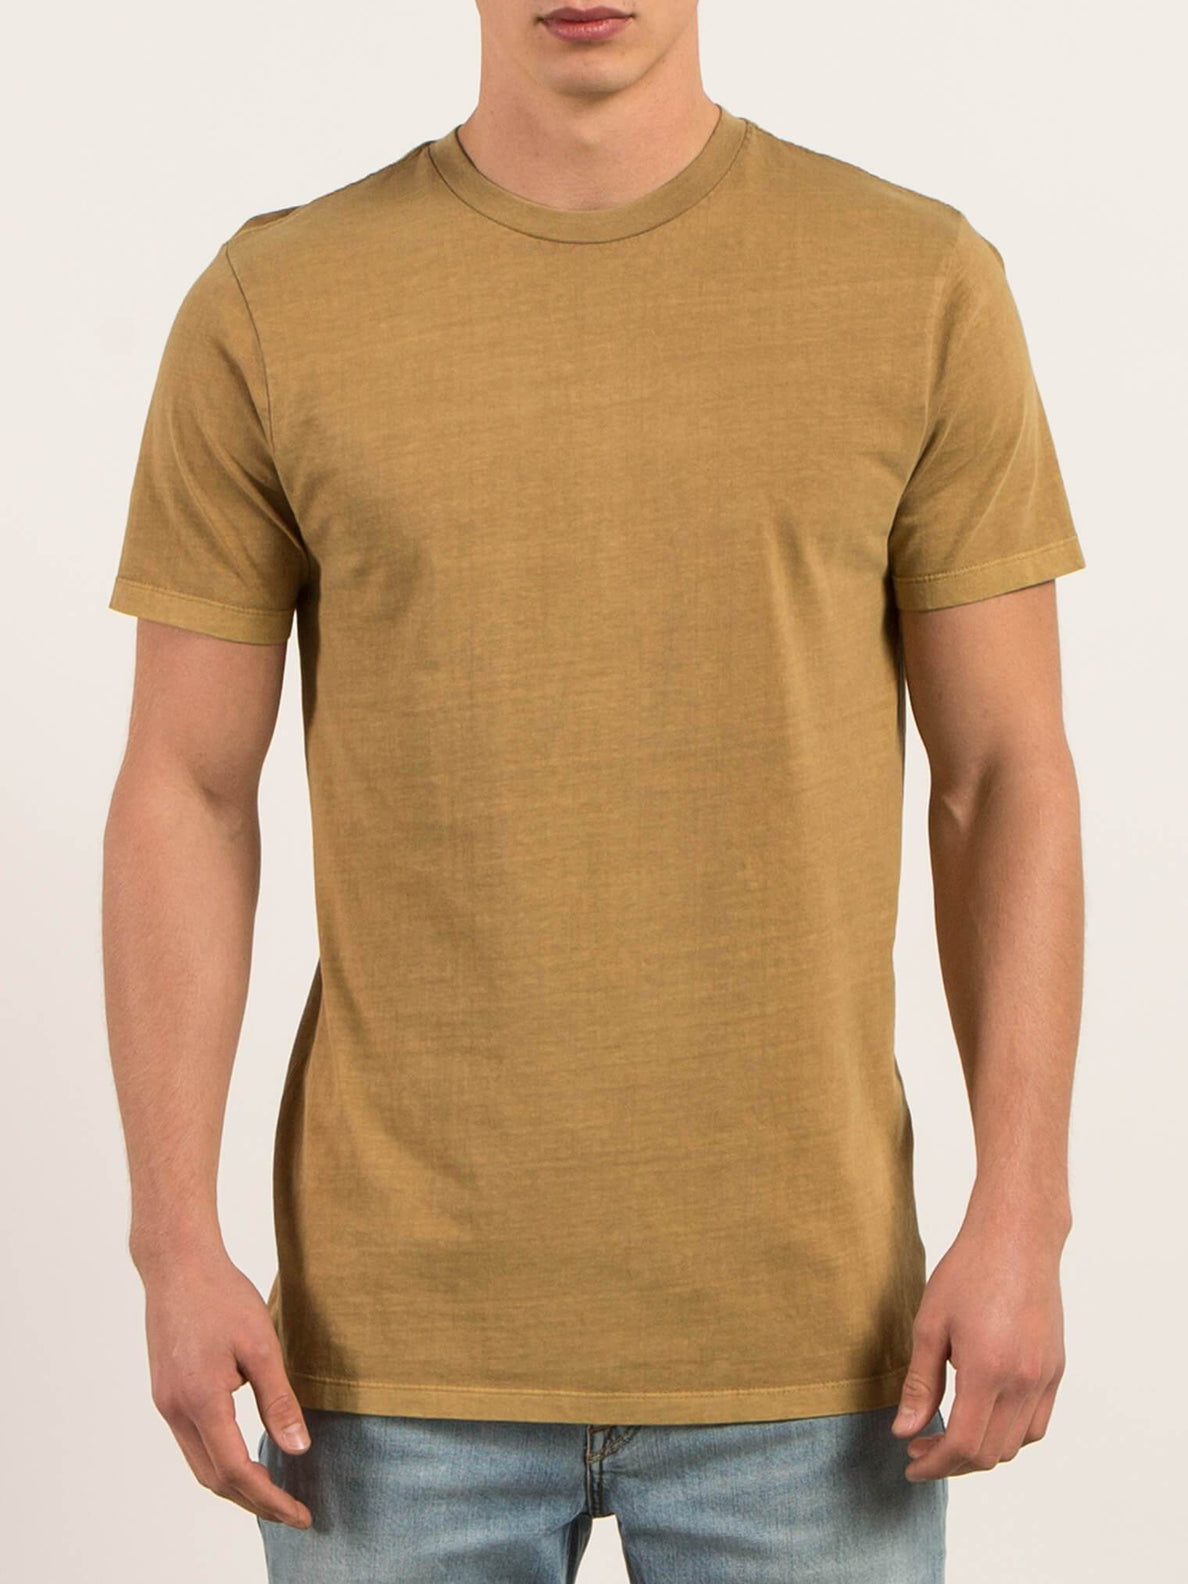 Pale Wash Solid Short Sleeve Tee - Burnt Khaki